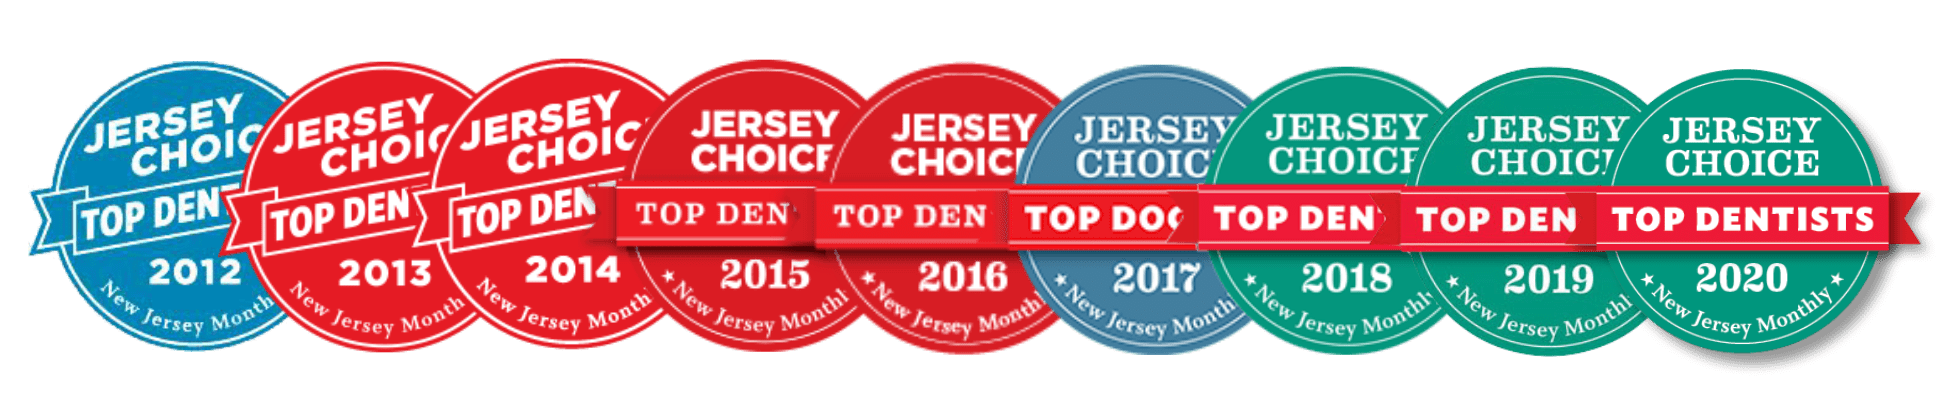 New Jersey Choice Top Dentists